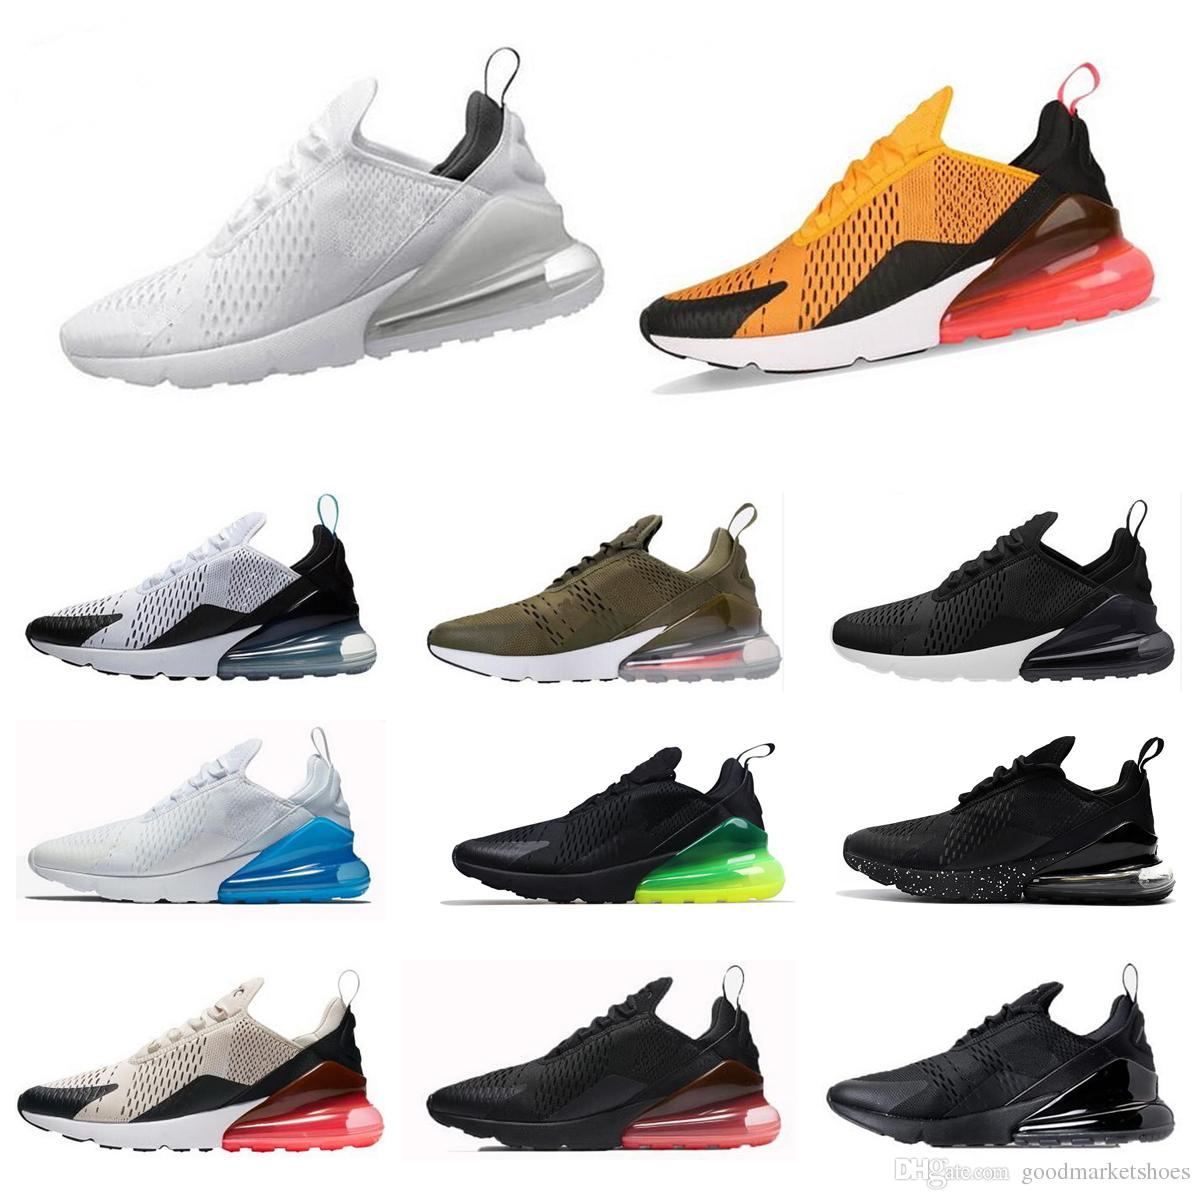 pretty nice 932a4 70157 Acheter Nike W Air Max 270 Airmax 270 Air 270 AH8050 Hommes Occasionnels  Chaussures 27C Triple Blanc Noir Sarcelle Bruce Lee Marron Olive Marine  Photo Bleu ...